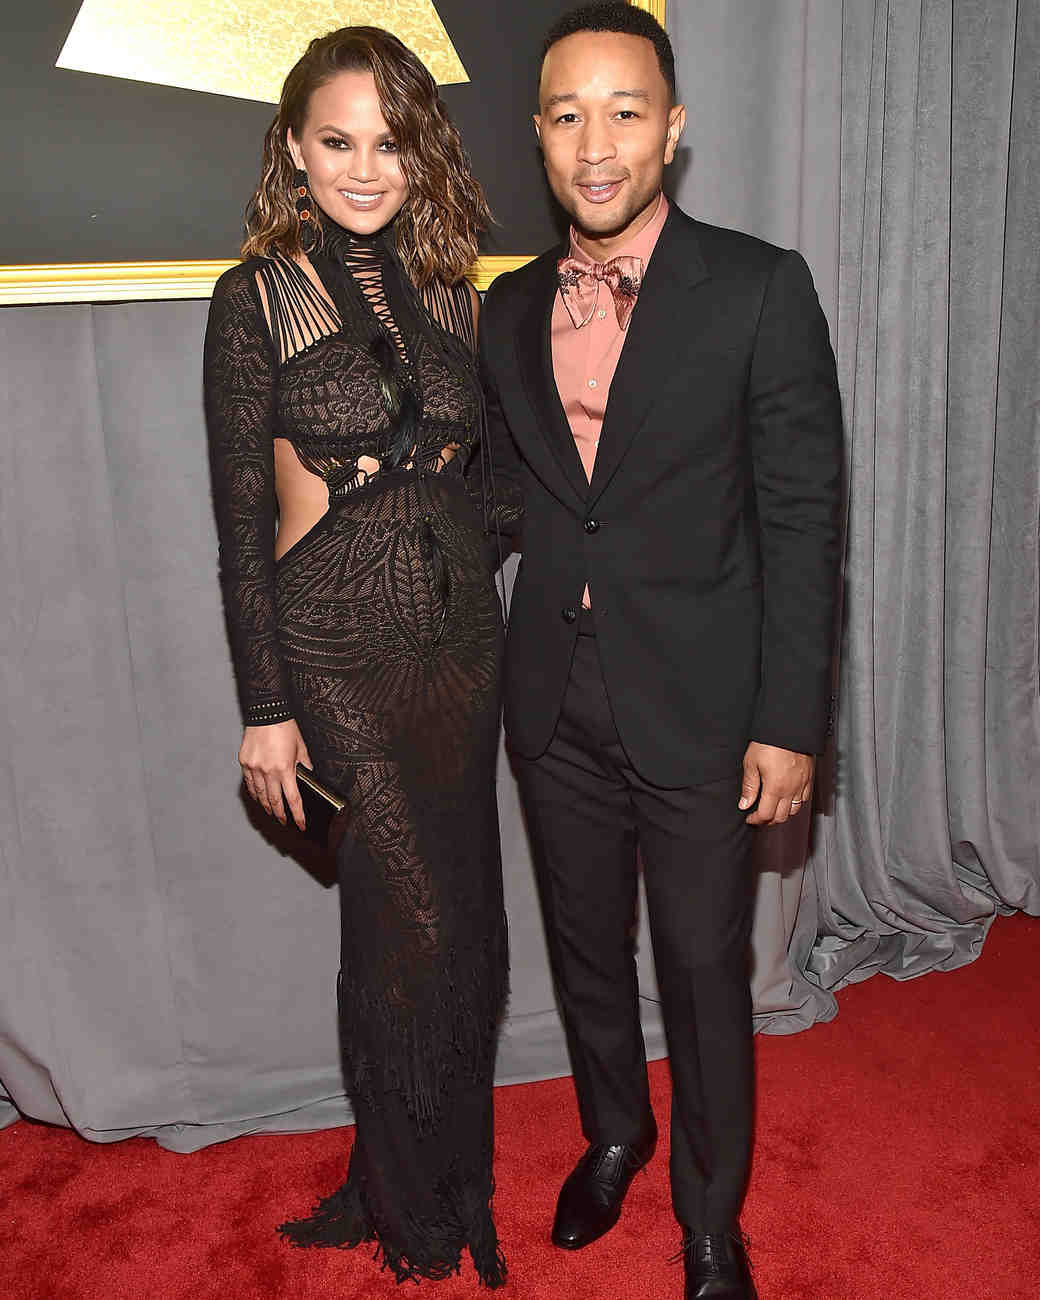 John Legend and Chrissy Teigen at 2017 Grammy Awards